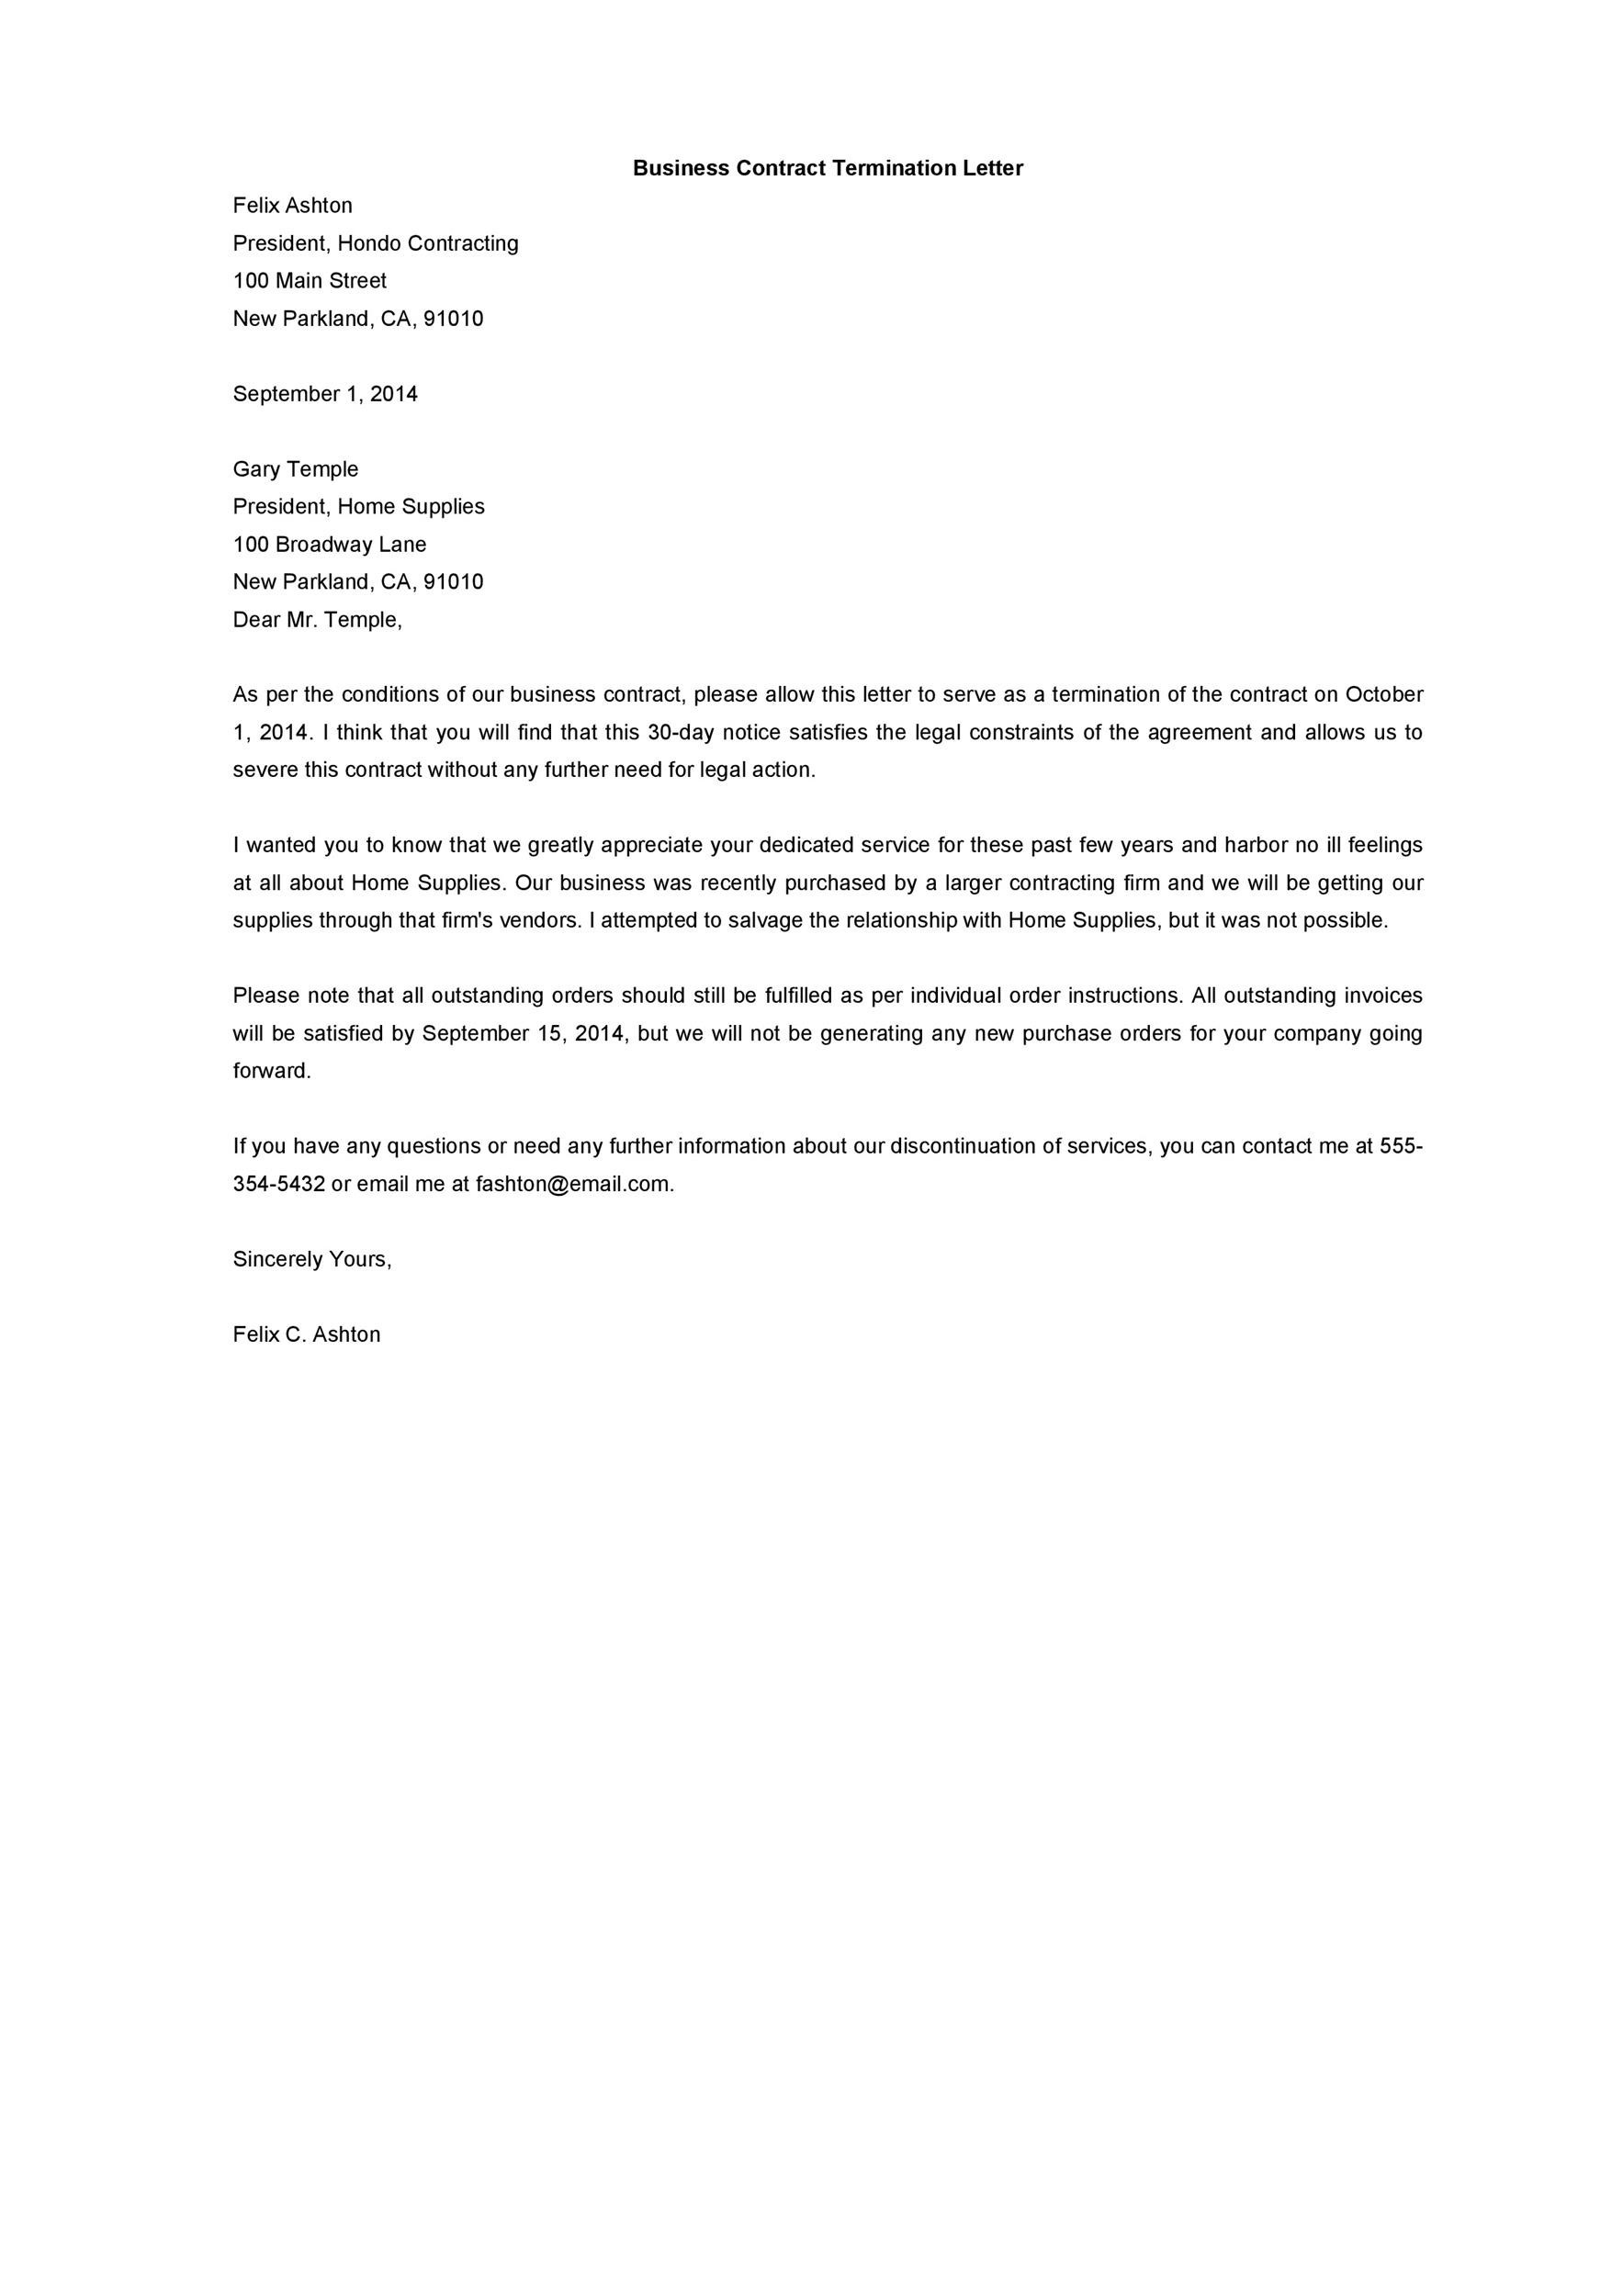 Separation Notice Template. Termination Letter Template 35 35